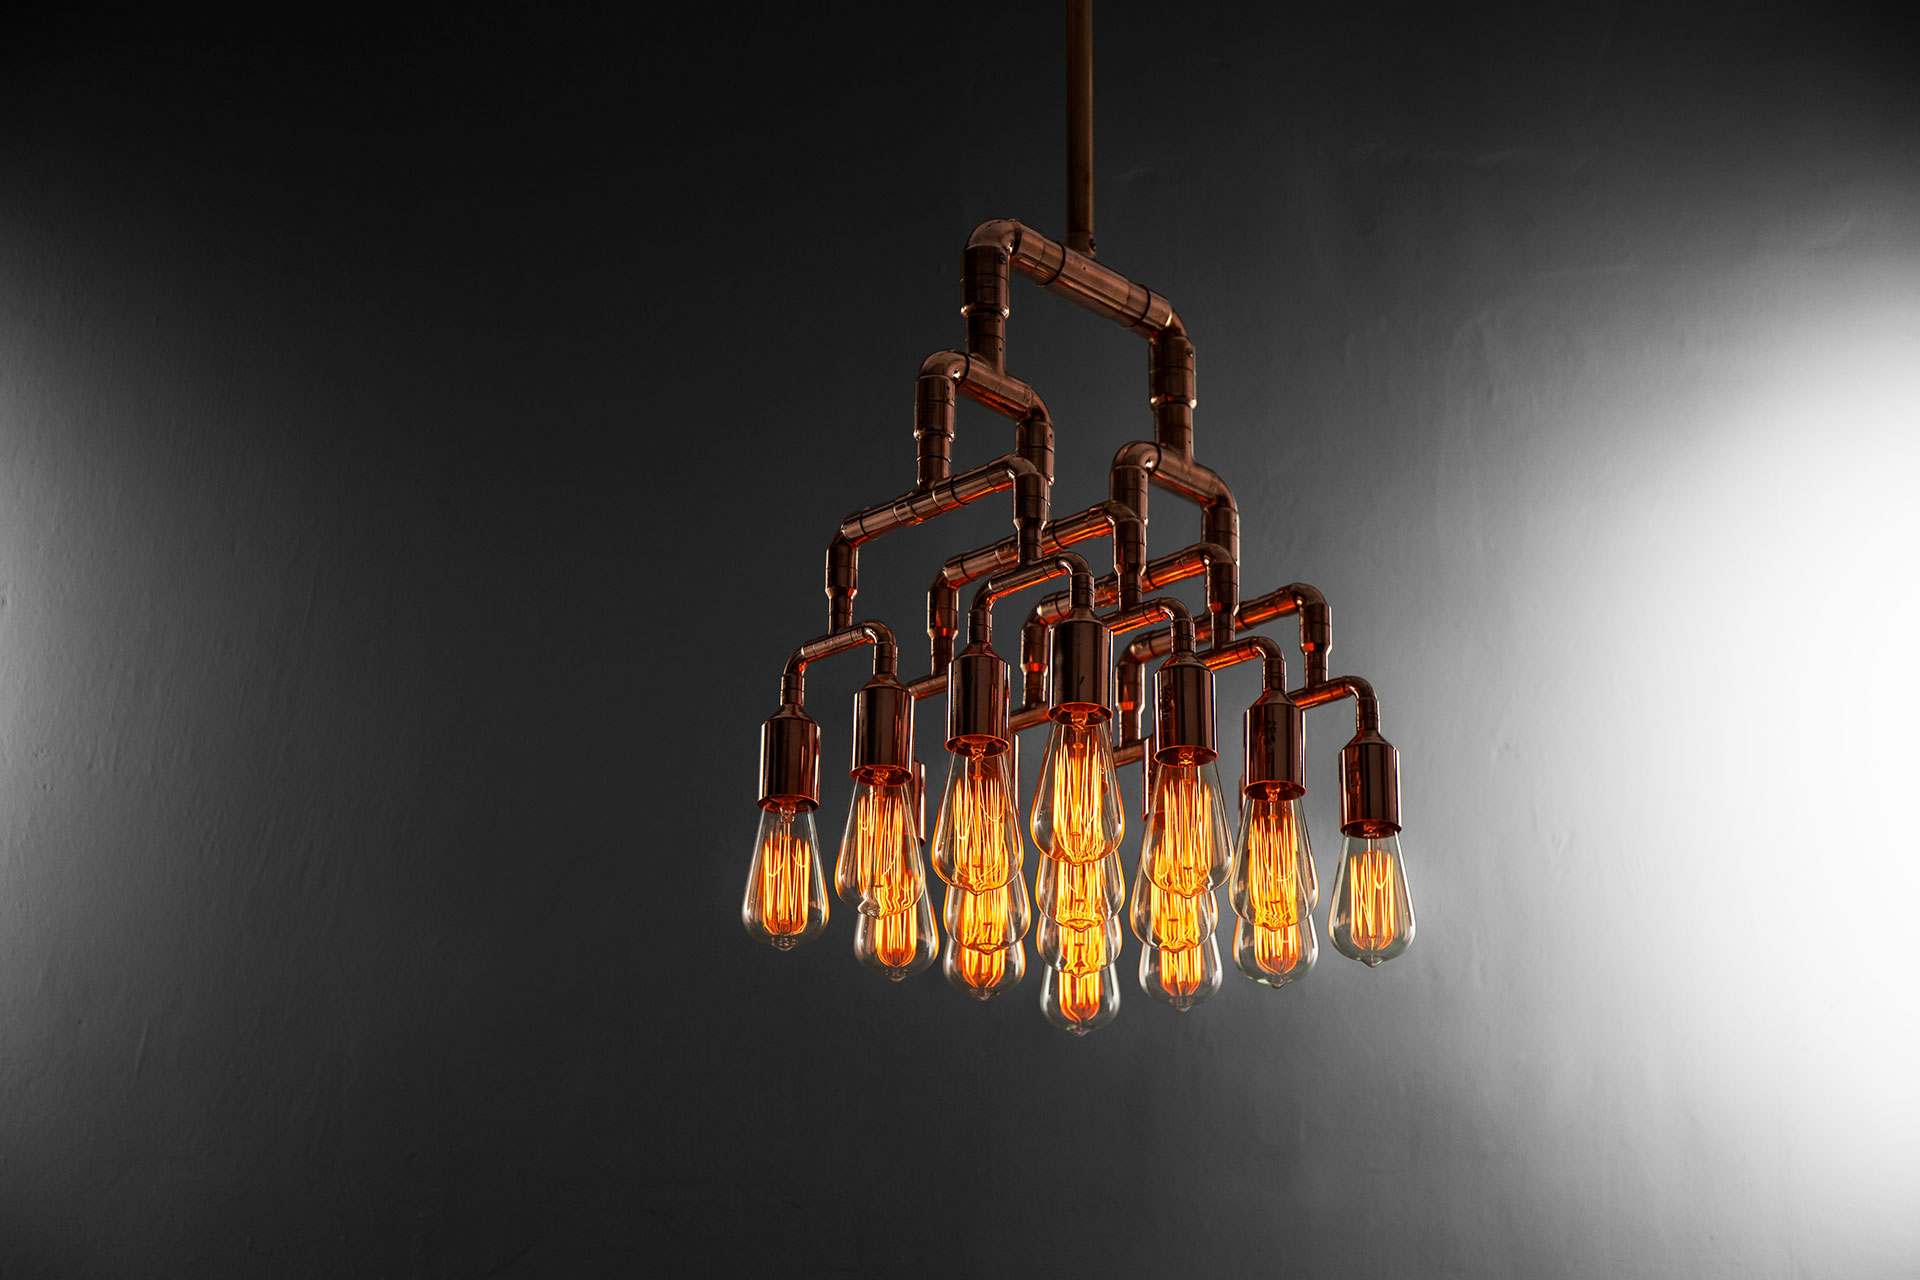 Unique cyberpunk ceiling lamp in trendy copper or brass inspired by industrial design